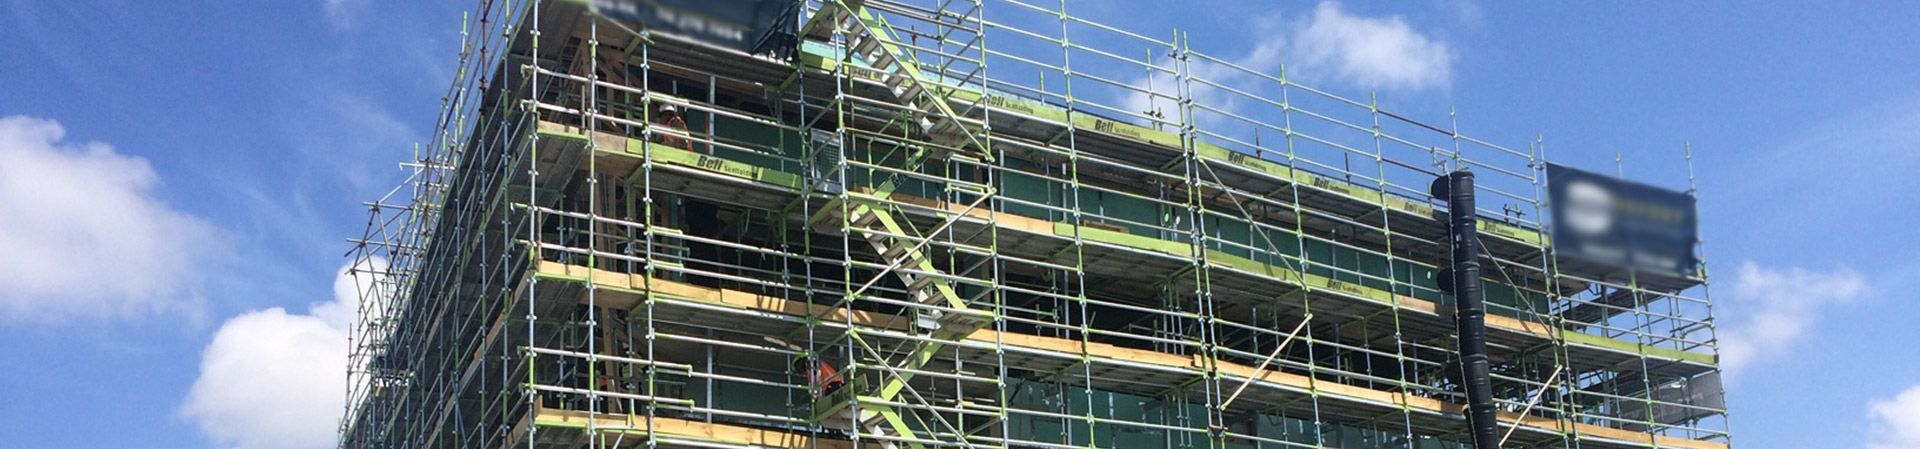 Southern Cross Scaffolding - Bell Scaffolding - High-end Commercial and Light Industrial Scaffolders